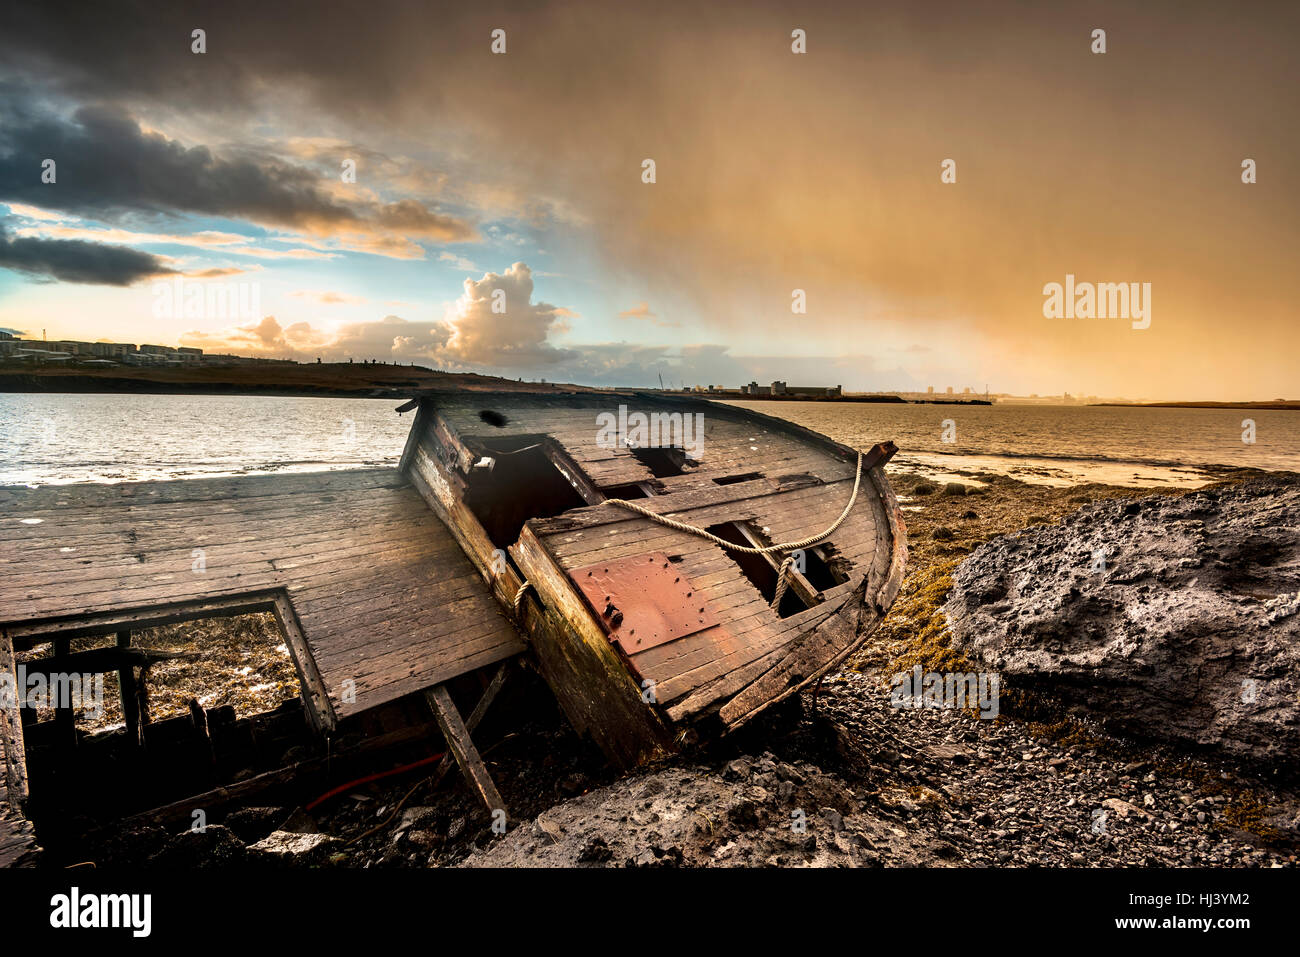 An old abandoned fishing vessel from the early 1900's rests on a remote beach as it rots, exposing the ship's - Stock Image